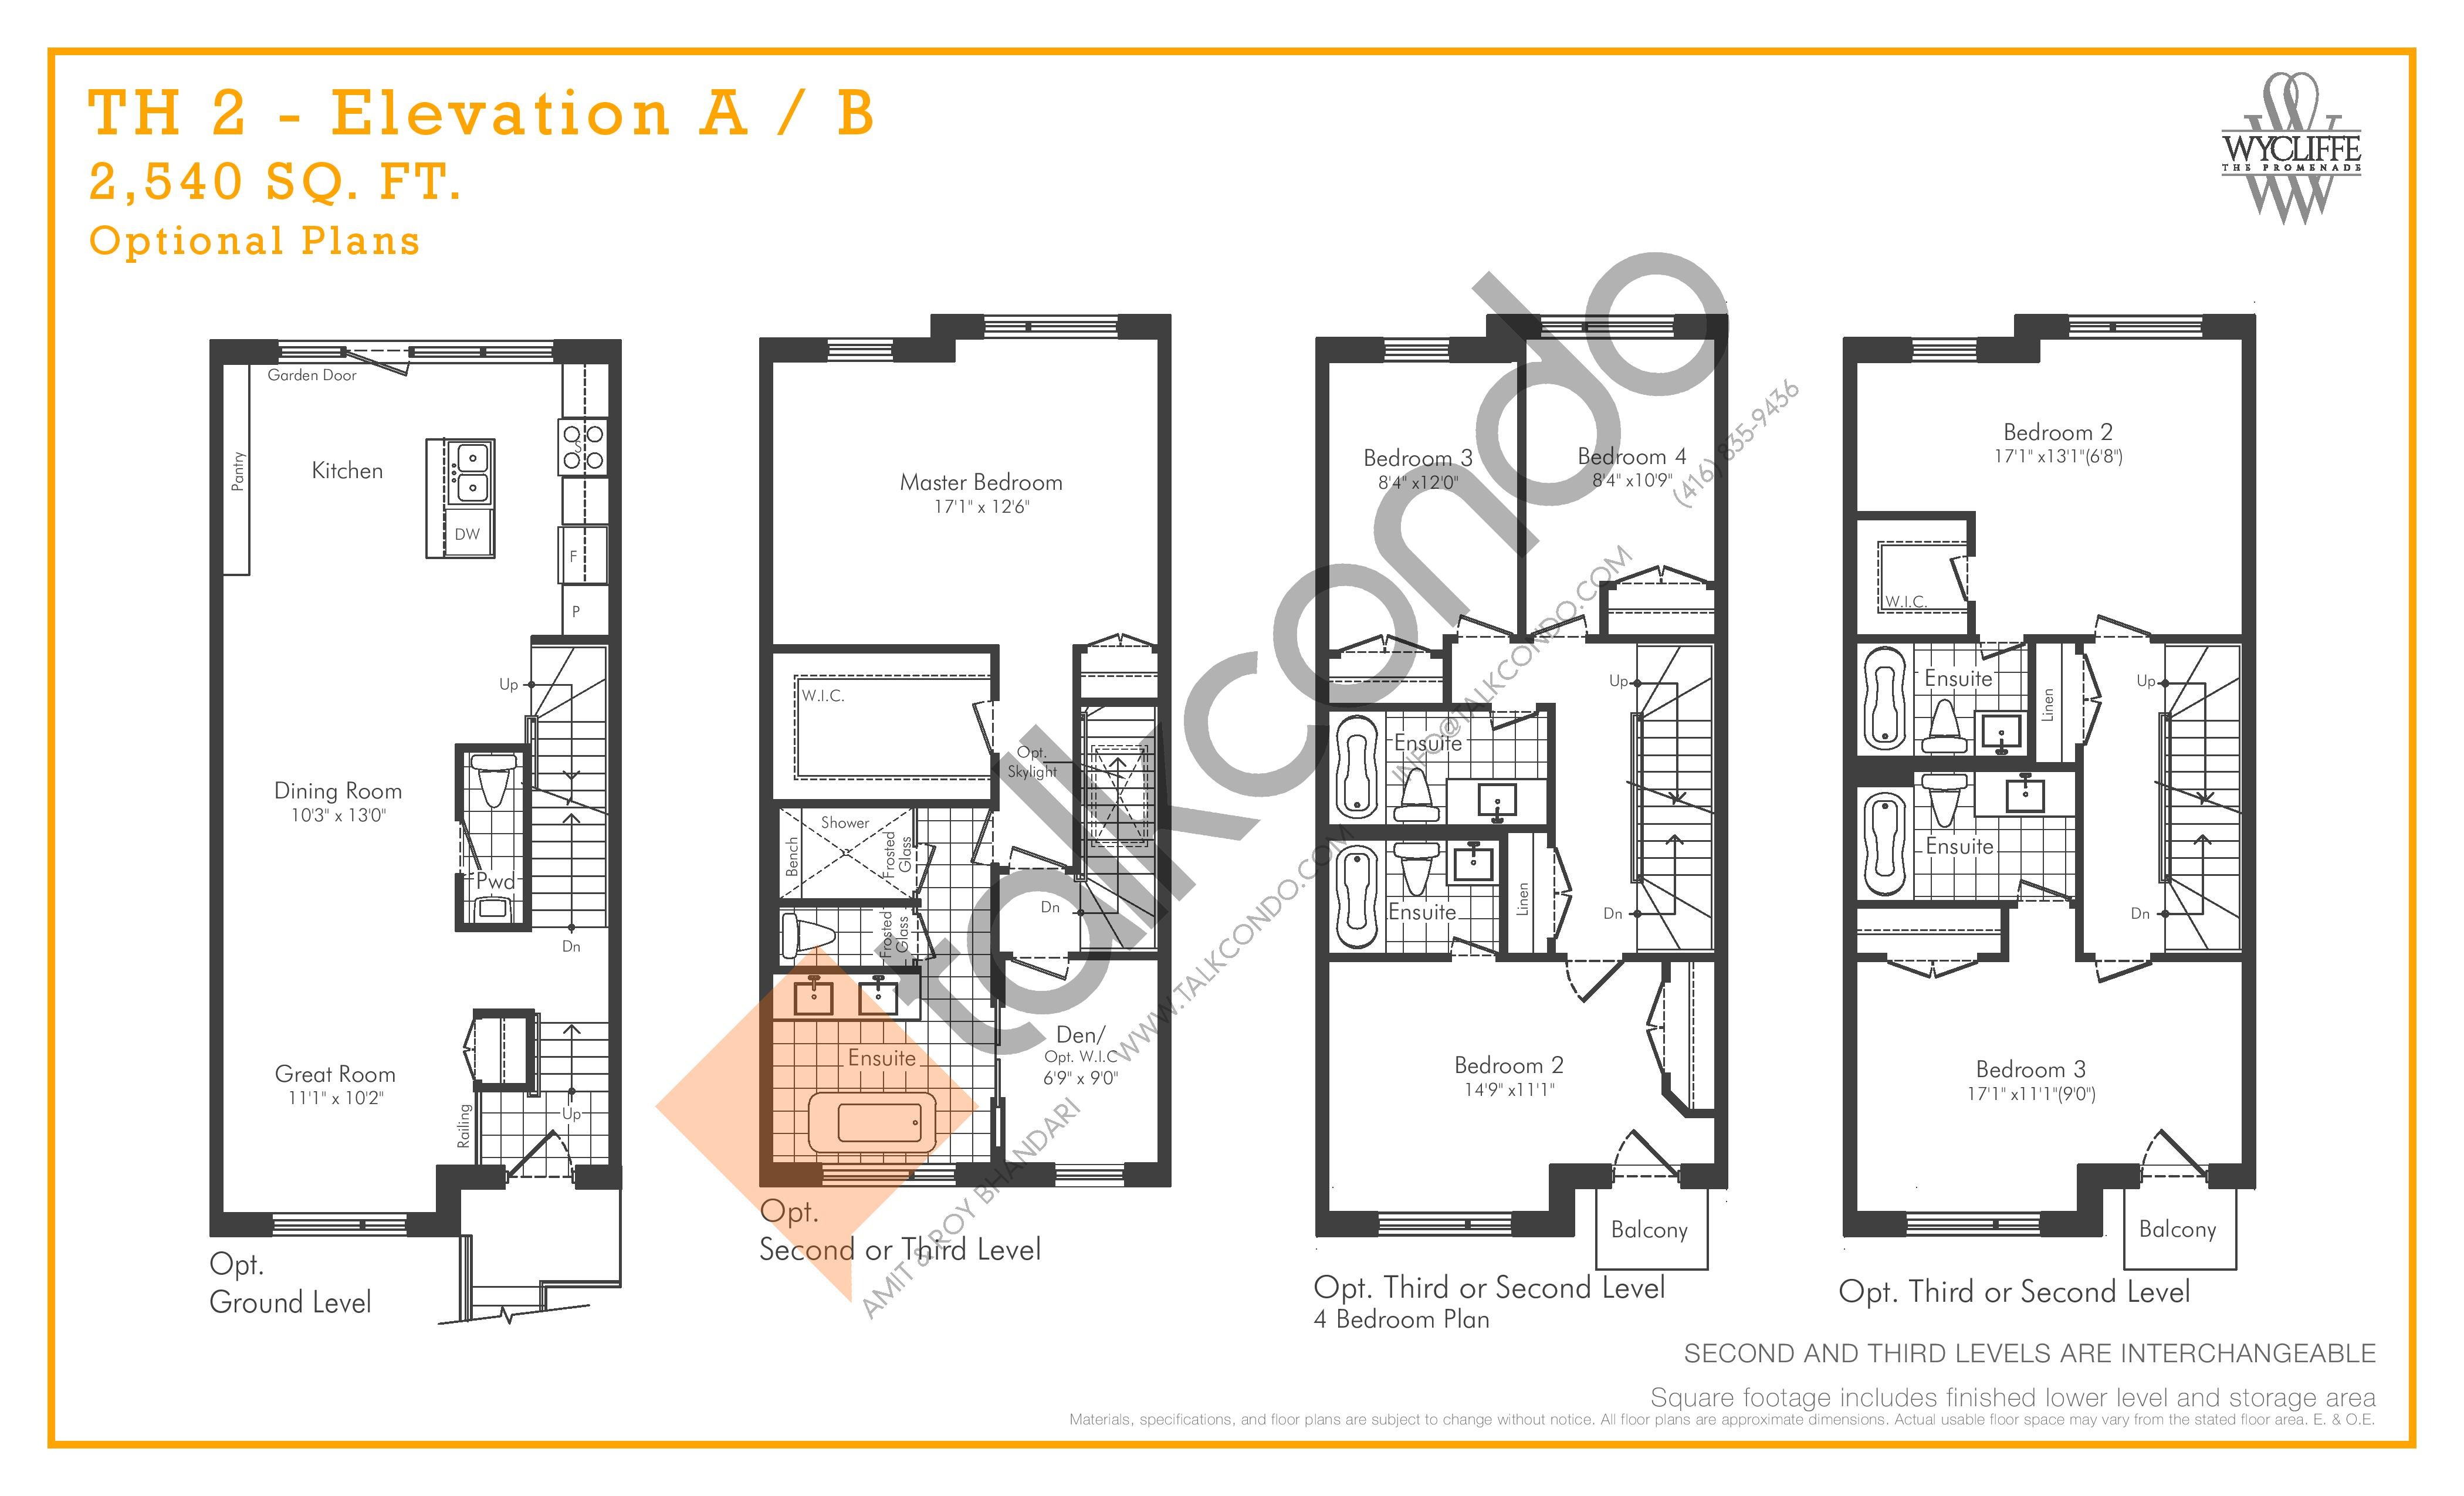 TH 2 - Elevation A/B Optional Plans Floor Plan at Wycliffe at the Promenade - 2540 sq.ft